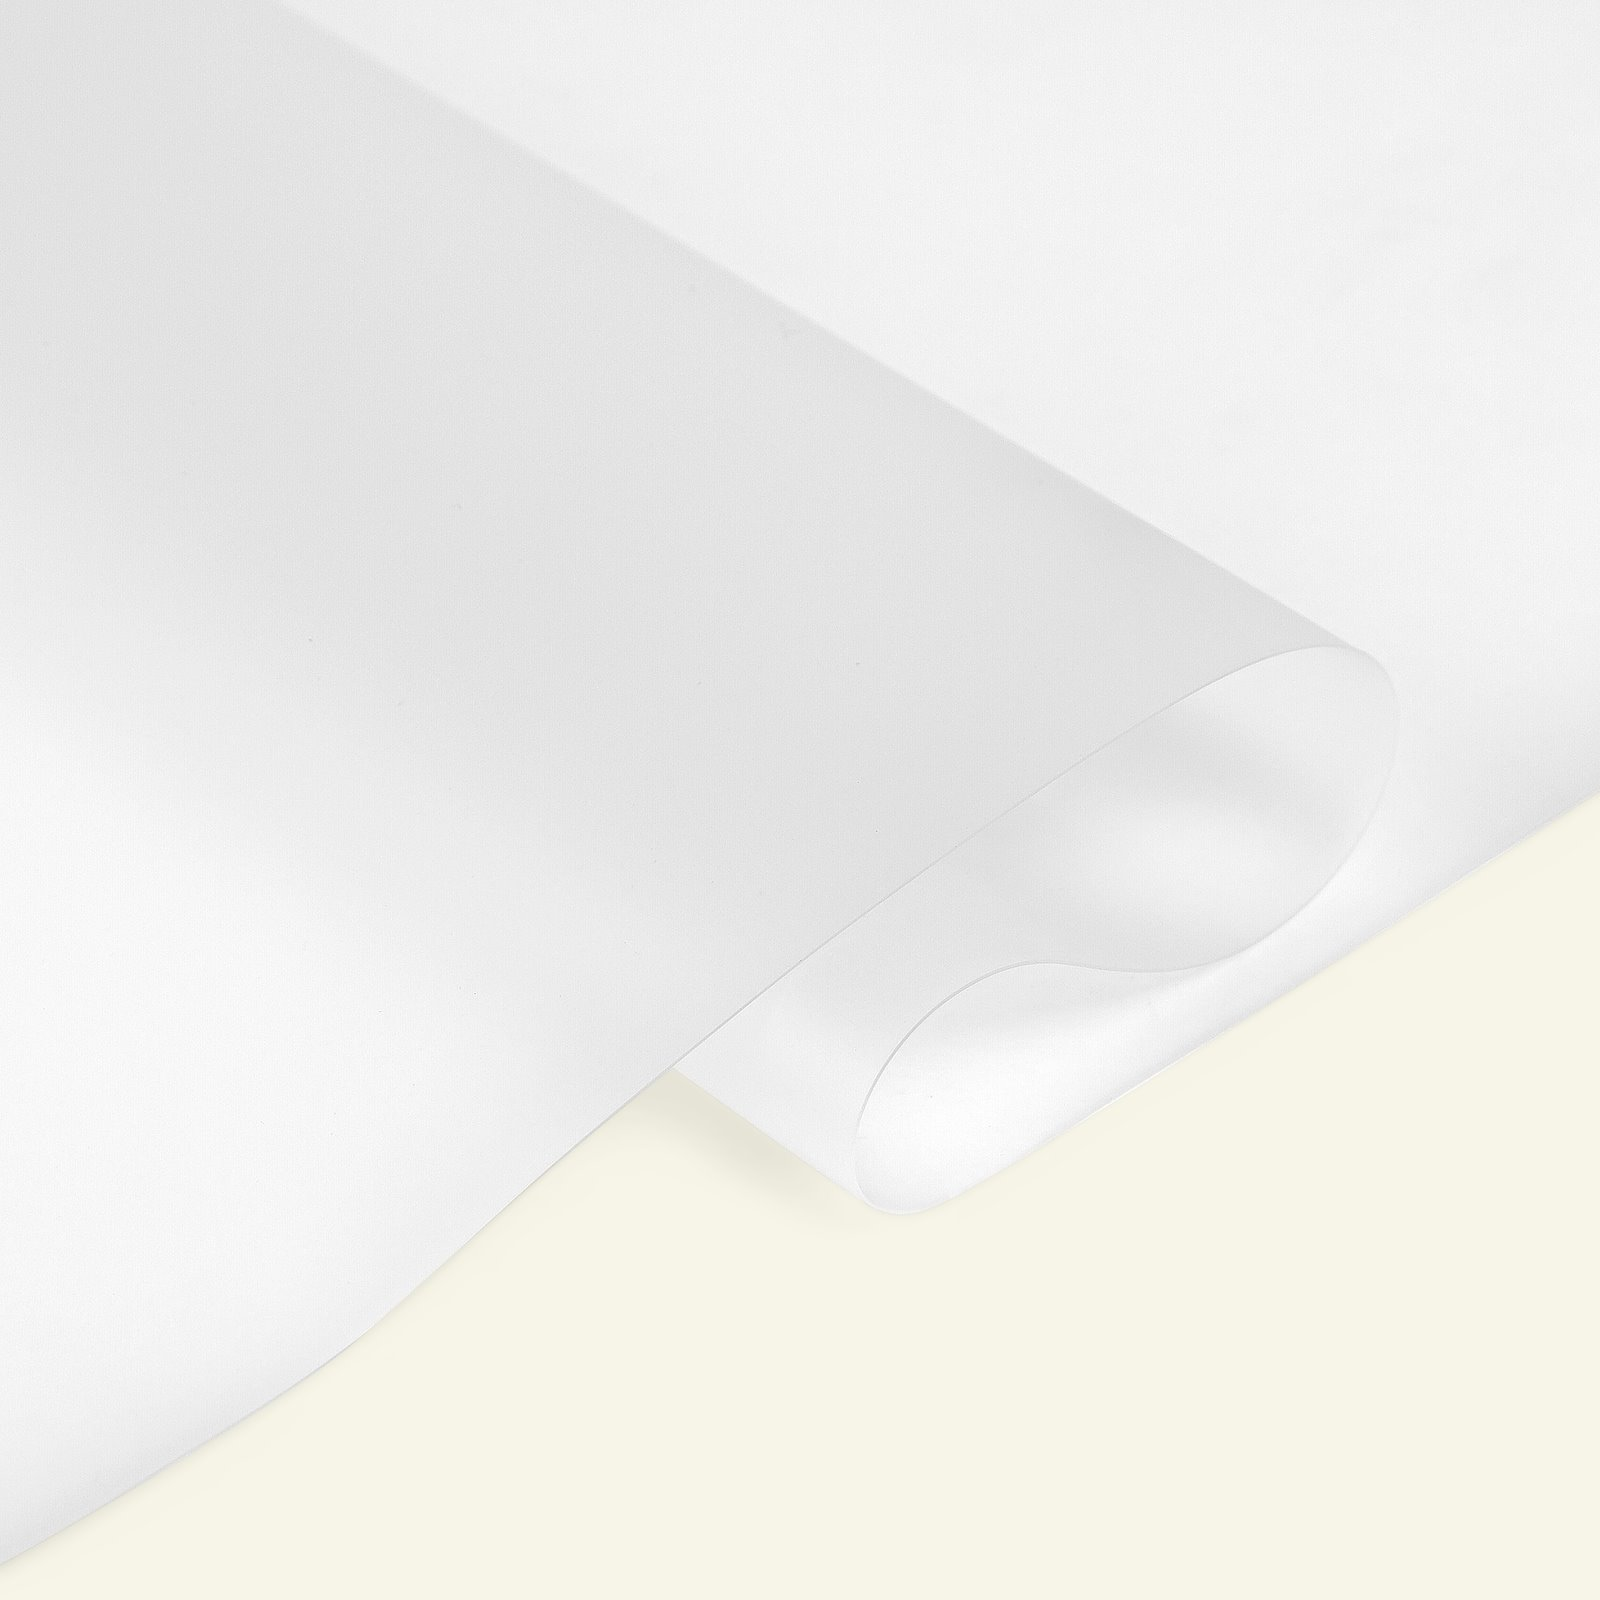 Silicone sheet 30x40cm white 1pc 95597_pack